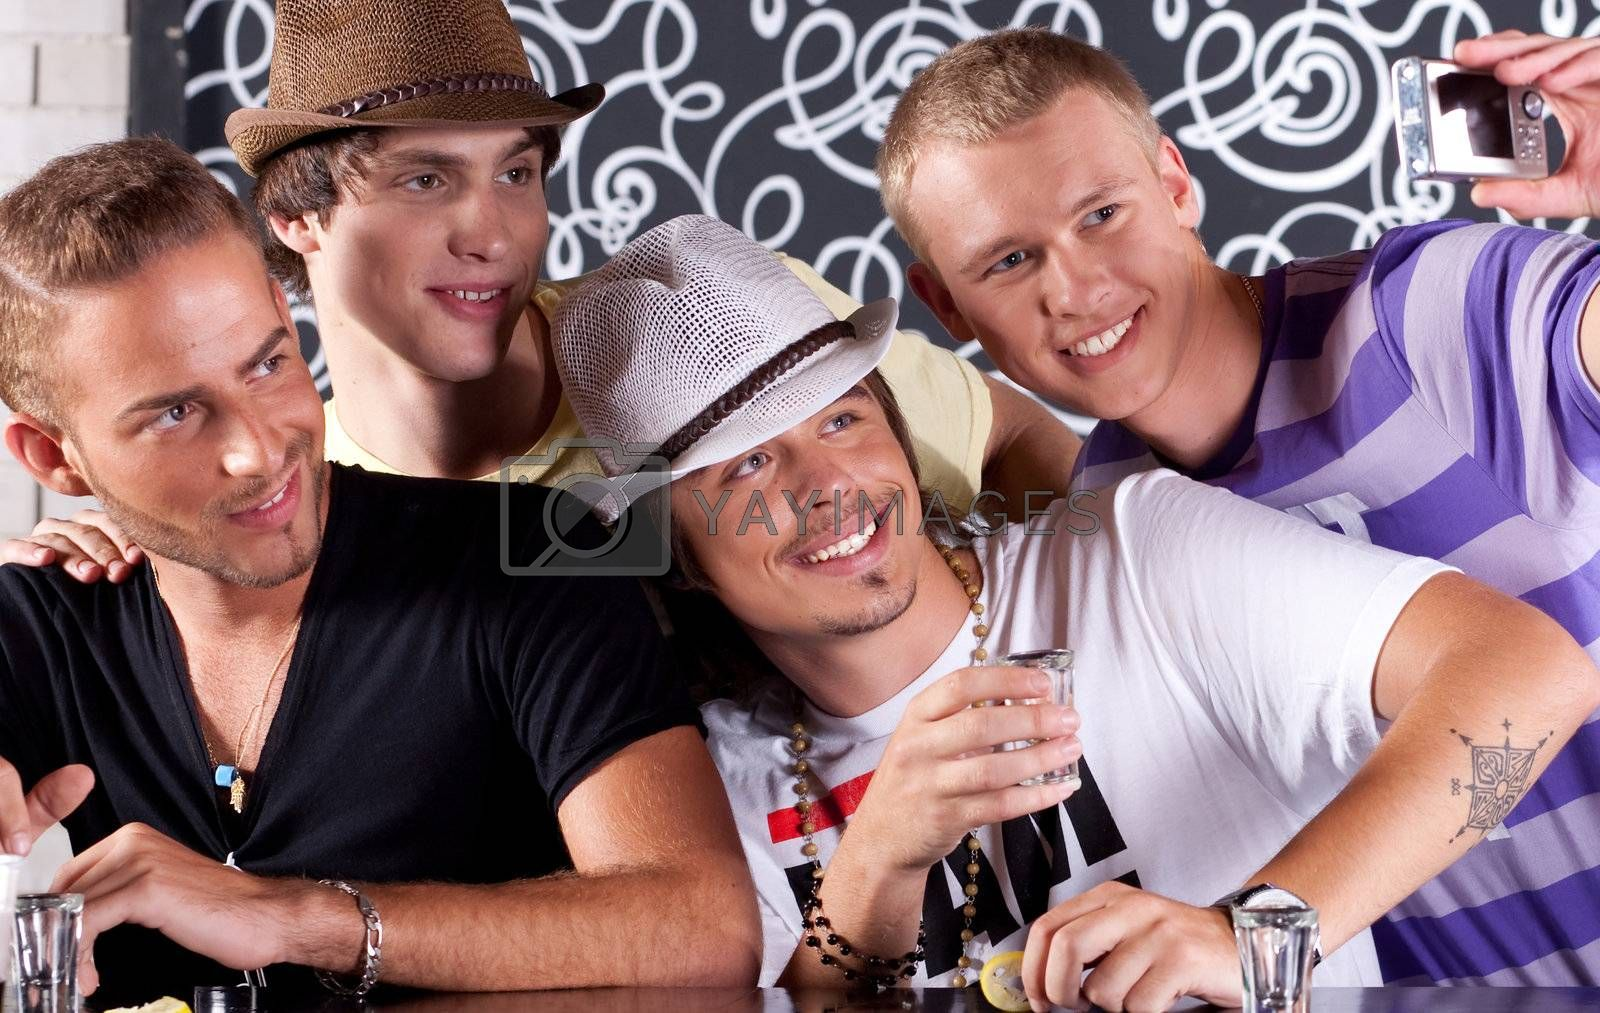 Self portrait of handsome bunch of guys drinking and enjoying in nighclub.